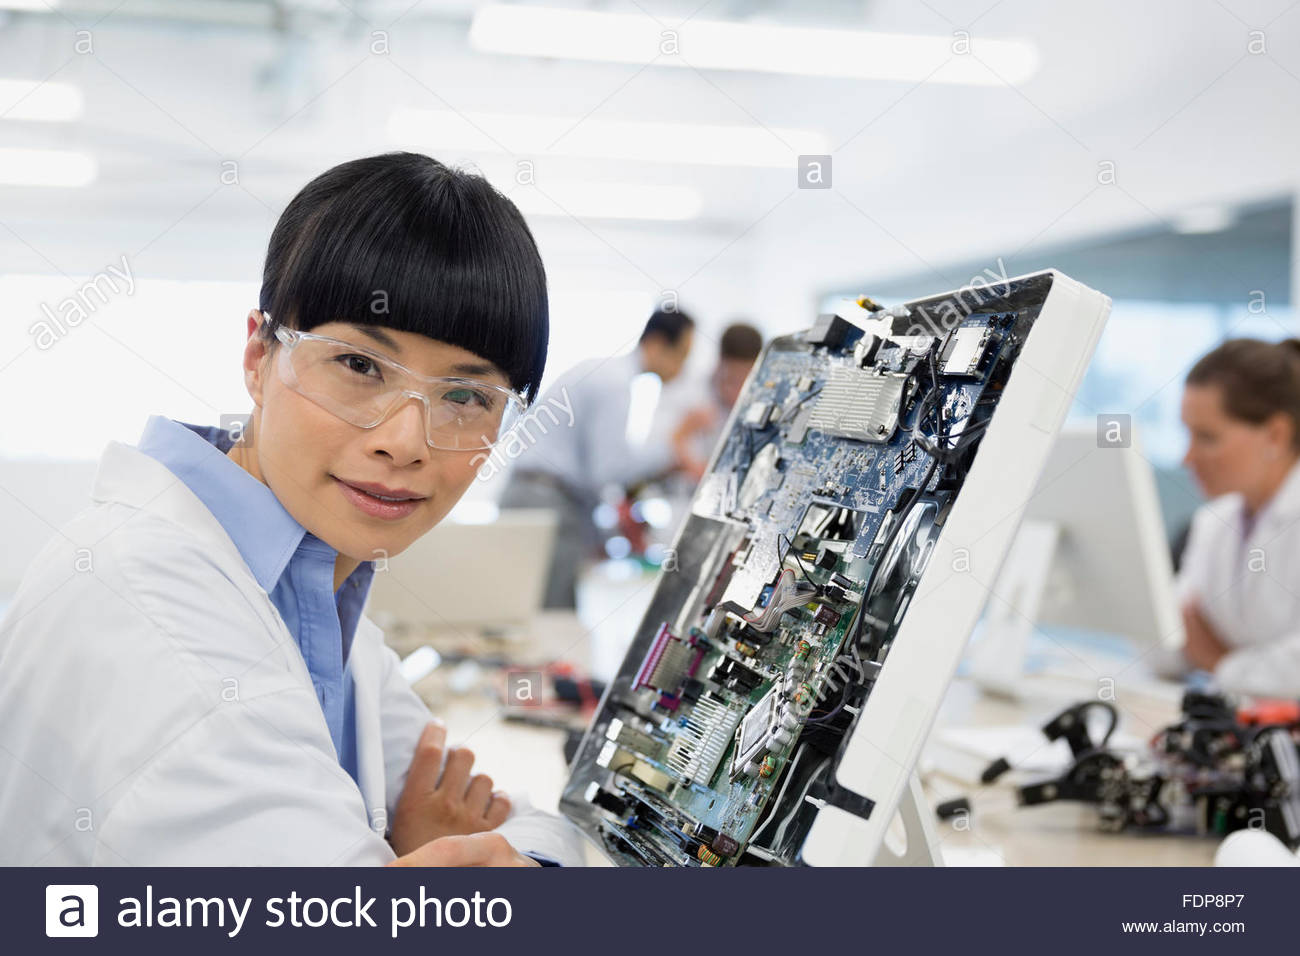 Assembly Board Stock Photos Images Alamy Electronic Circuit Jobs Portrait Engineer Assembling Image